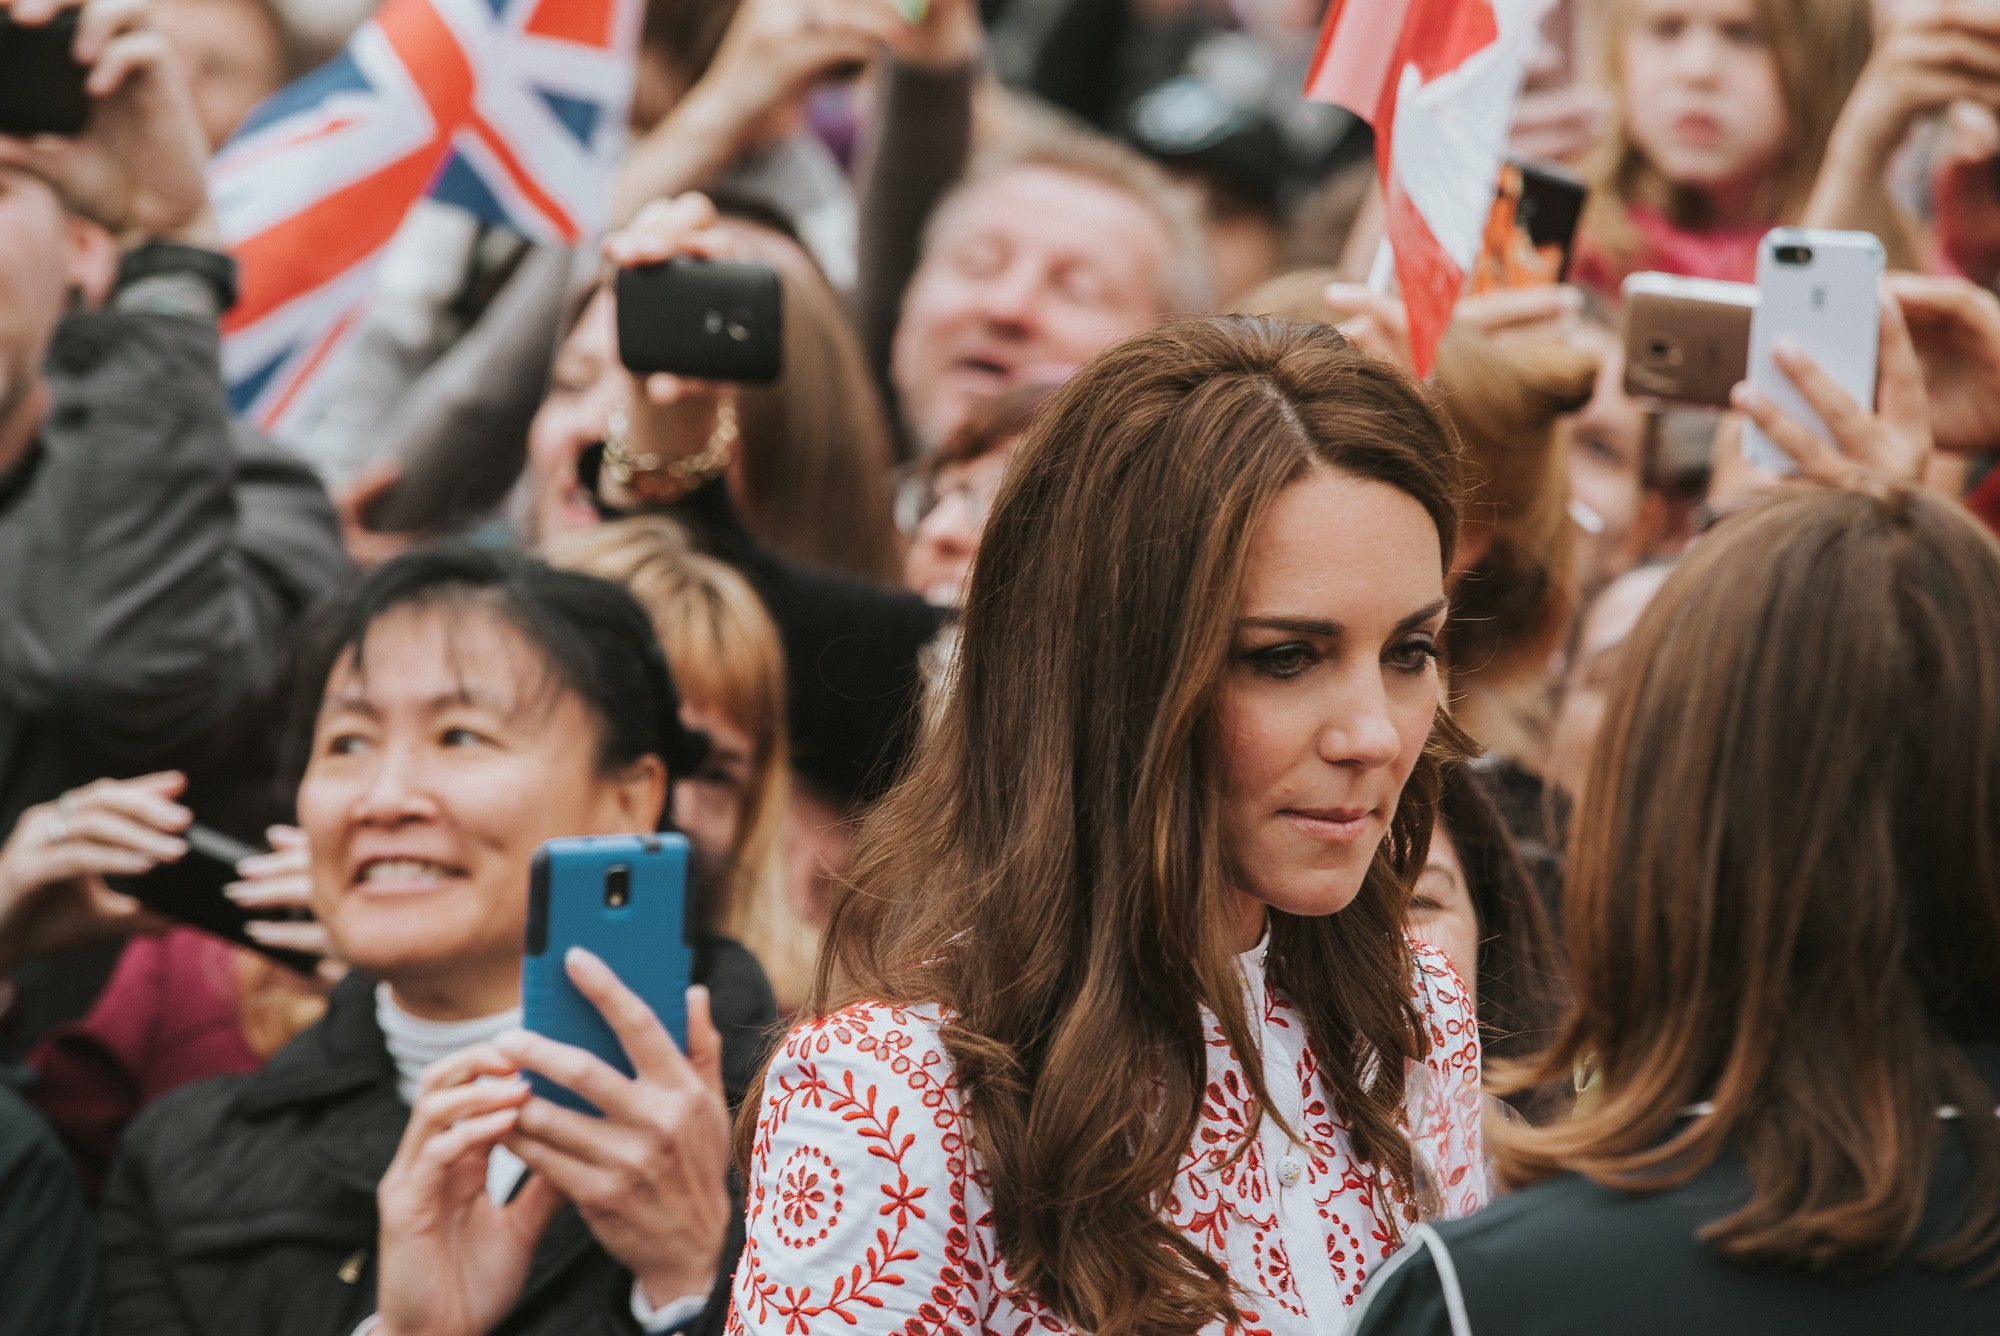 Catherine, Duchess of Cambridge meeting wellwishers in Vancouver (By Alaina Michelle of AntiSocial Media)